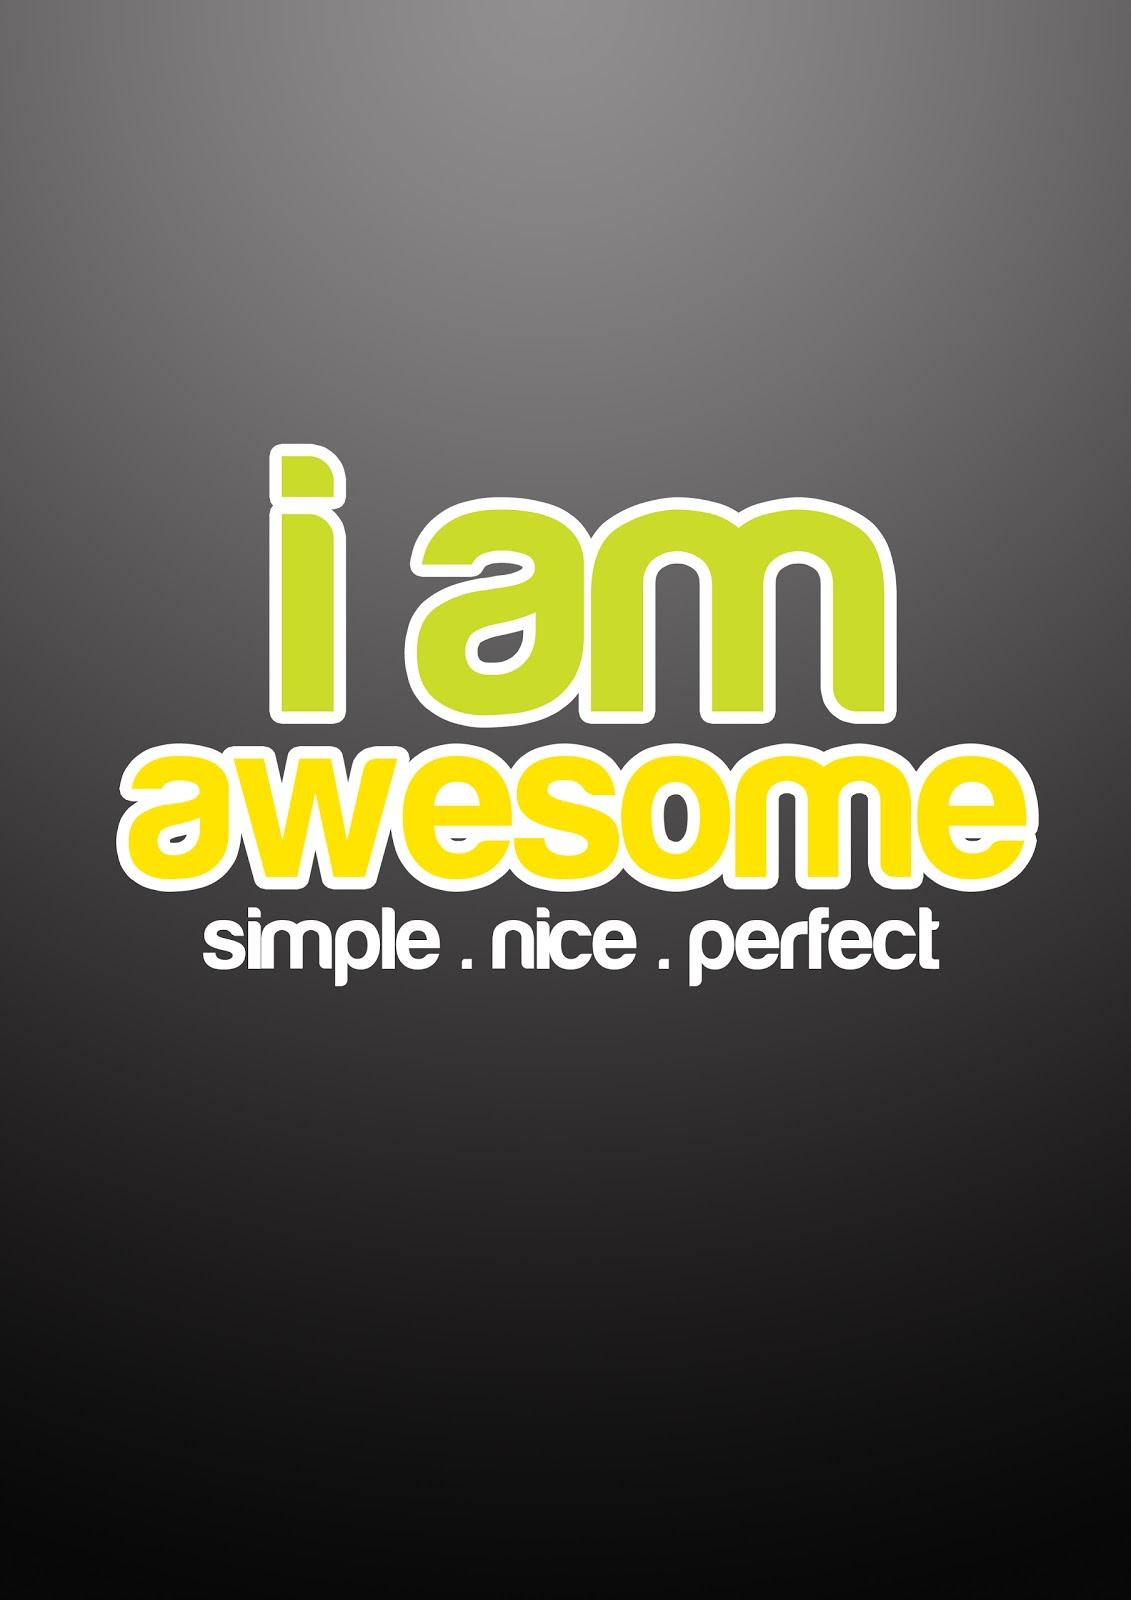 GenYong's UNITY site: i am awesome